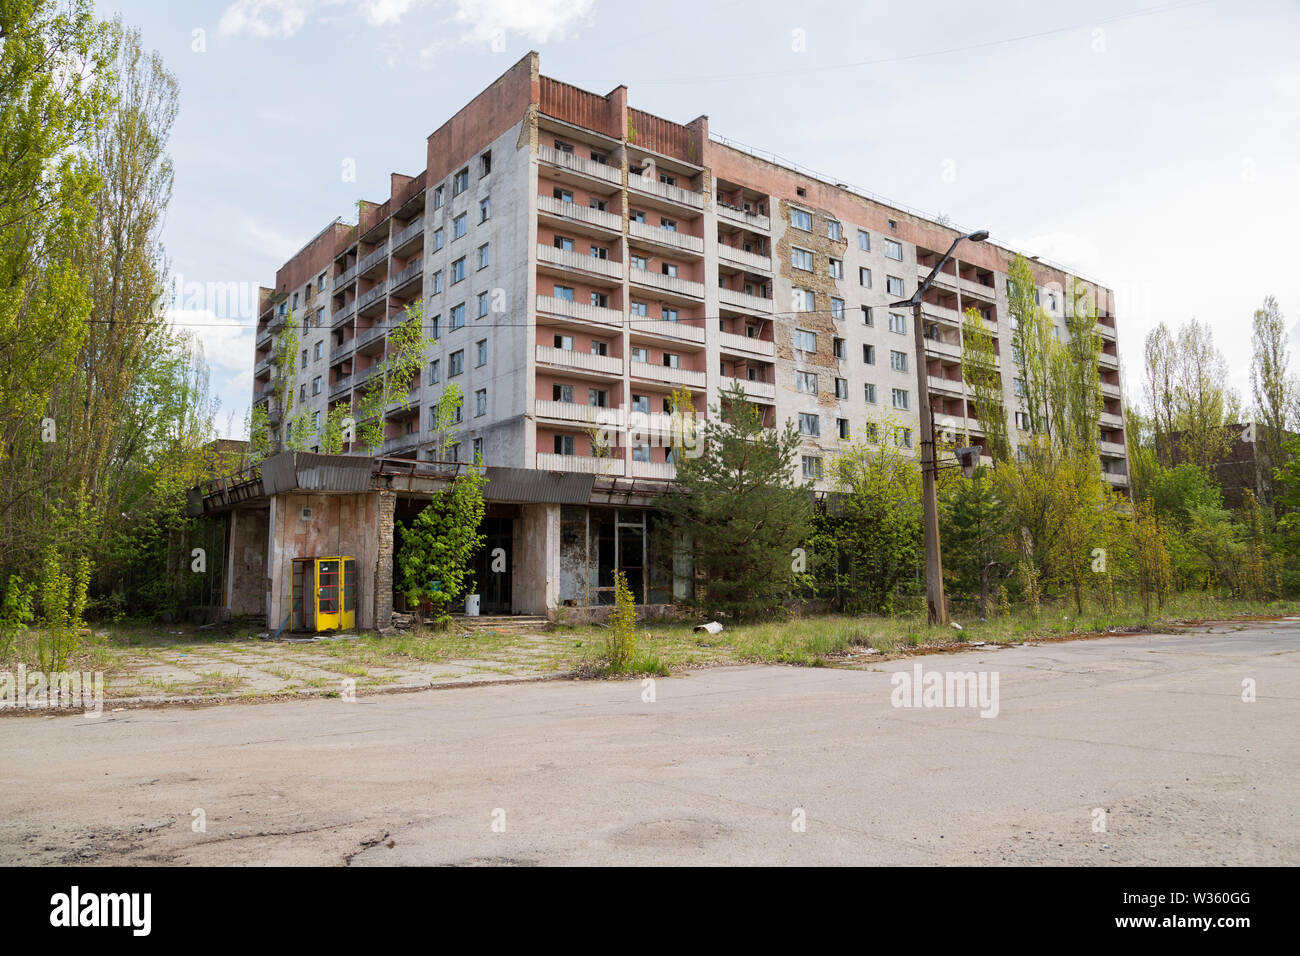 Residential area of abandoned Pripyat city in Chernobyl Exclusion Zone, Ukraine - Stock Image